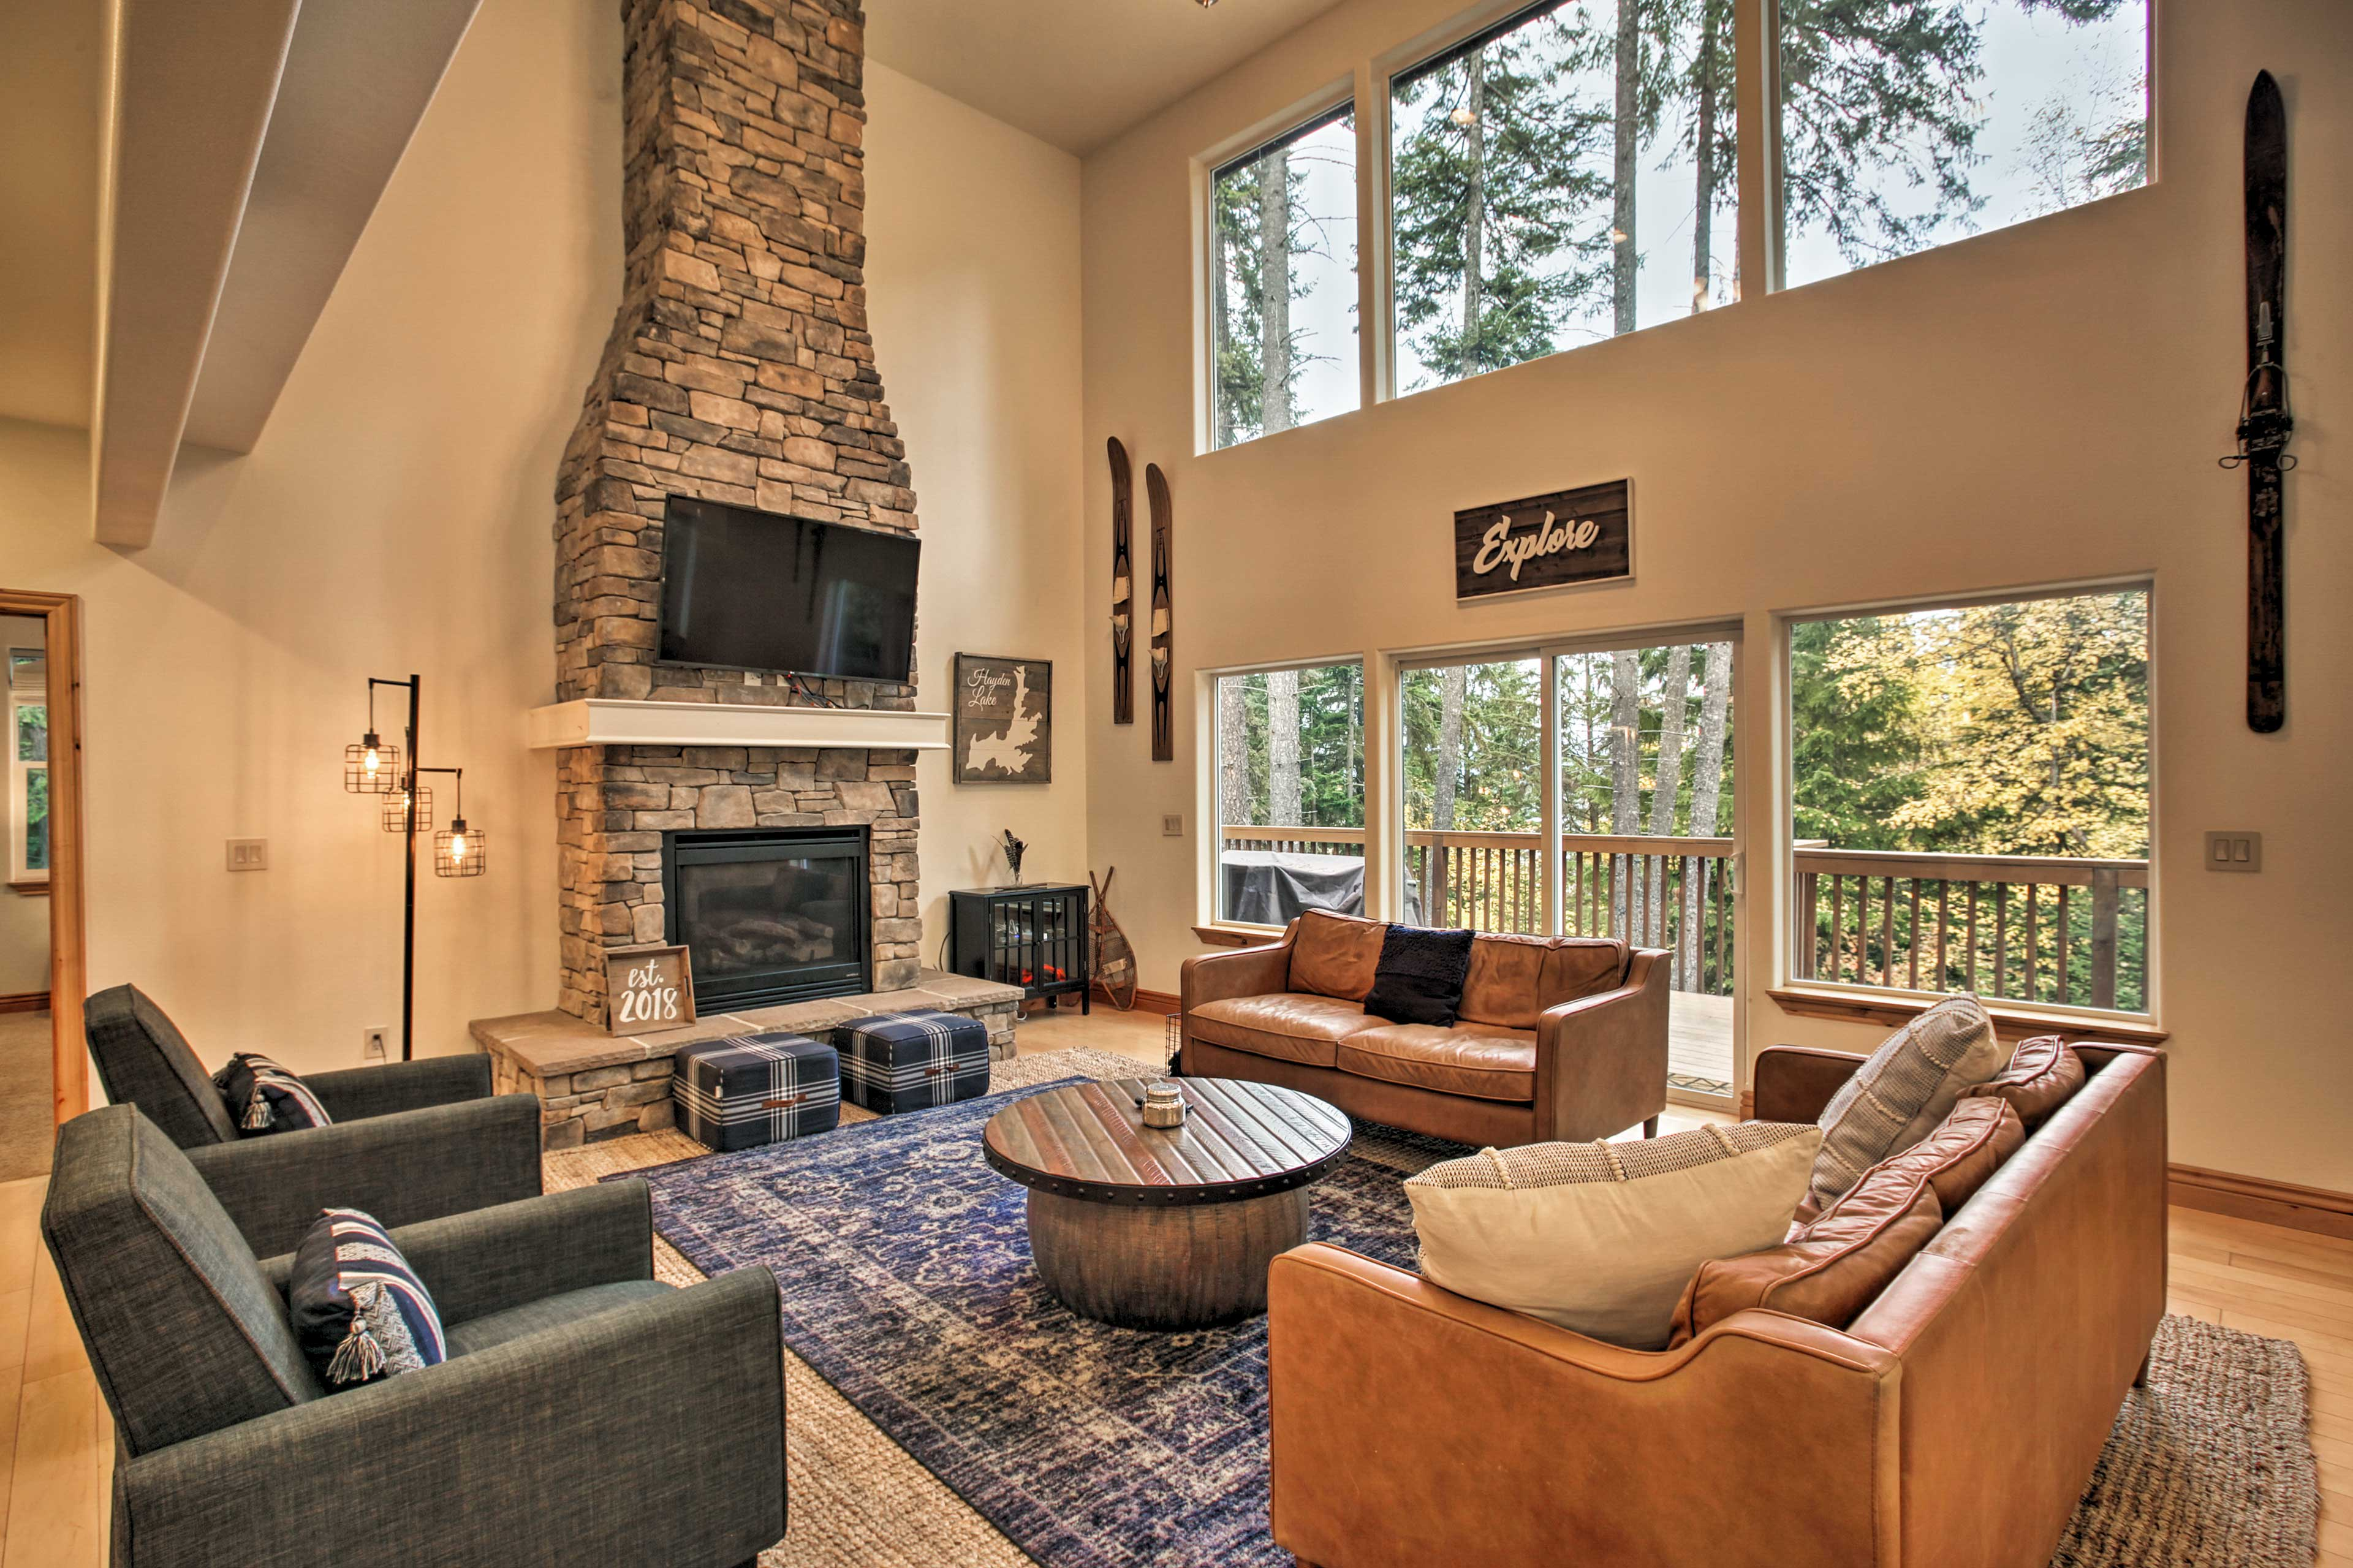 Experience Hayden Lake in luxury at this upscale vacation rental lake house!